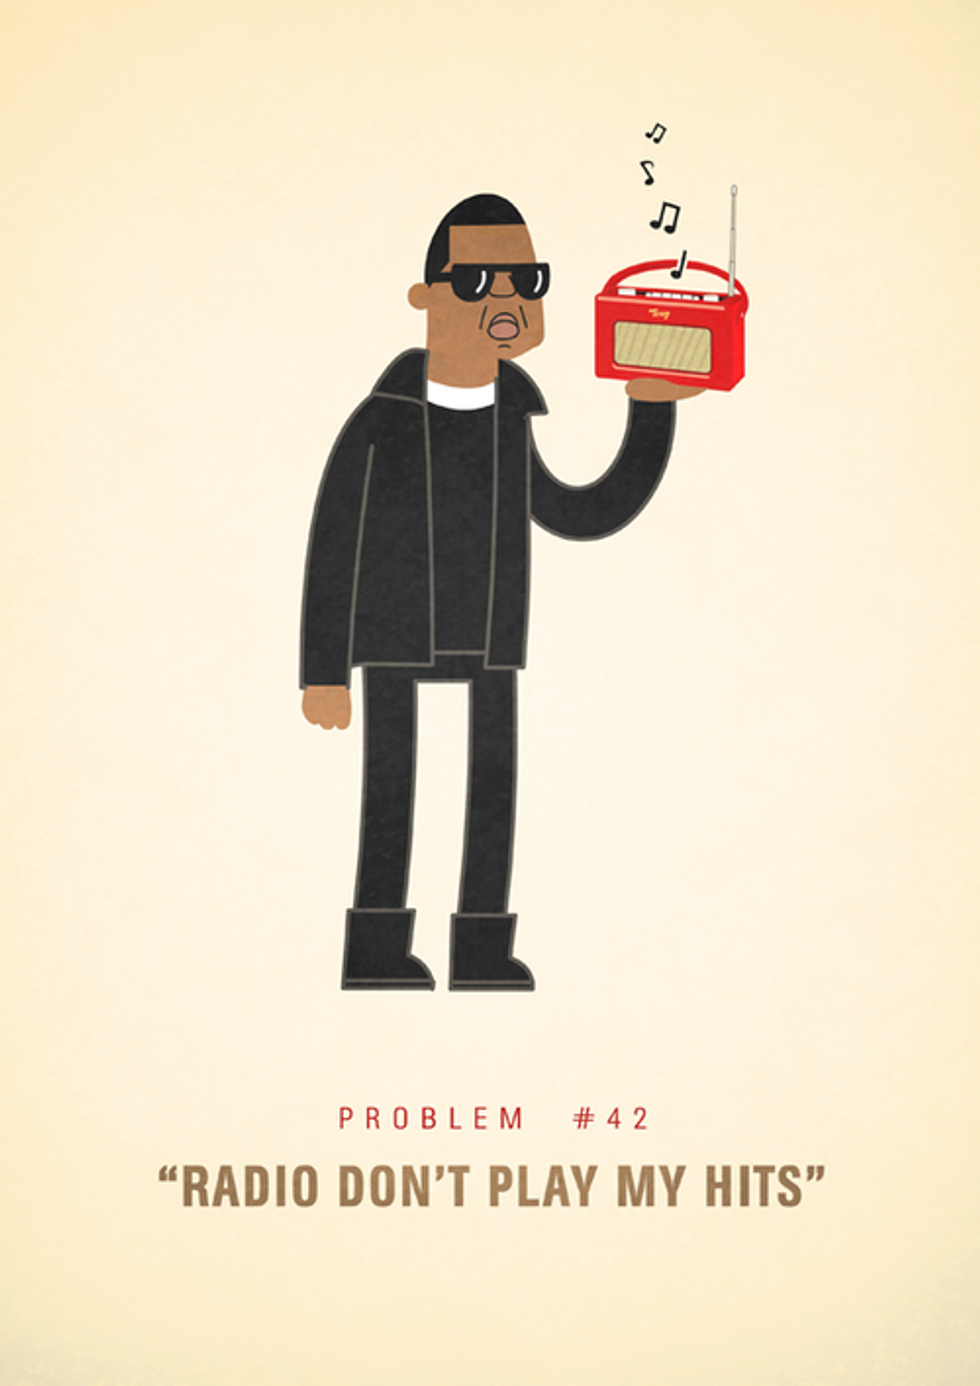 This Tumblr Illustrates All 99 of Jay-Z's Problems